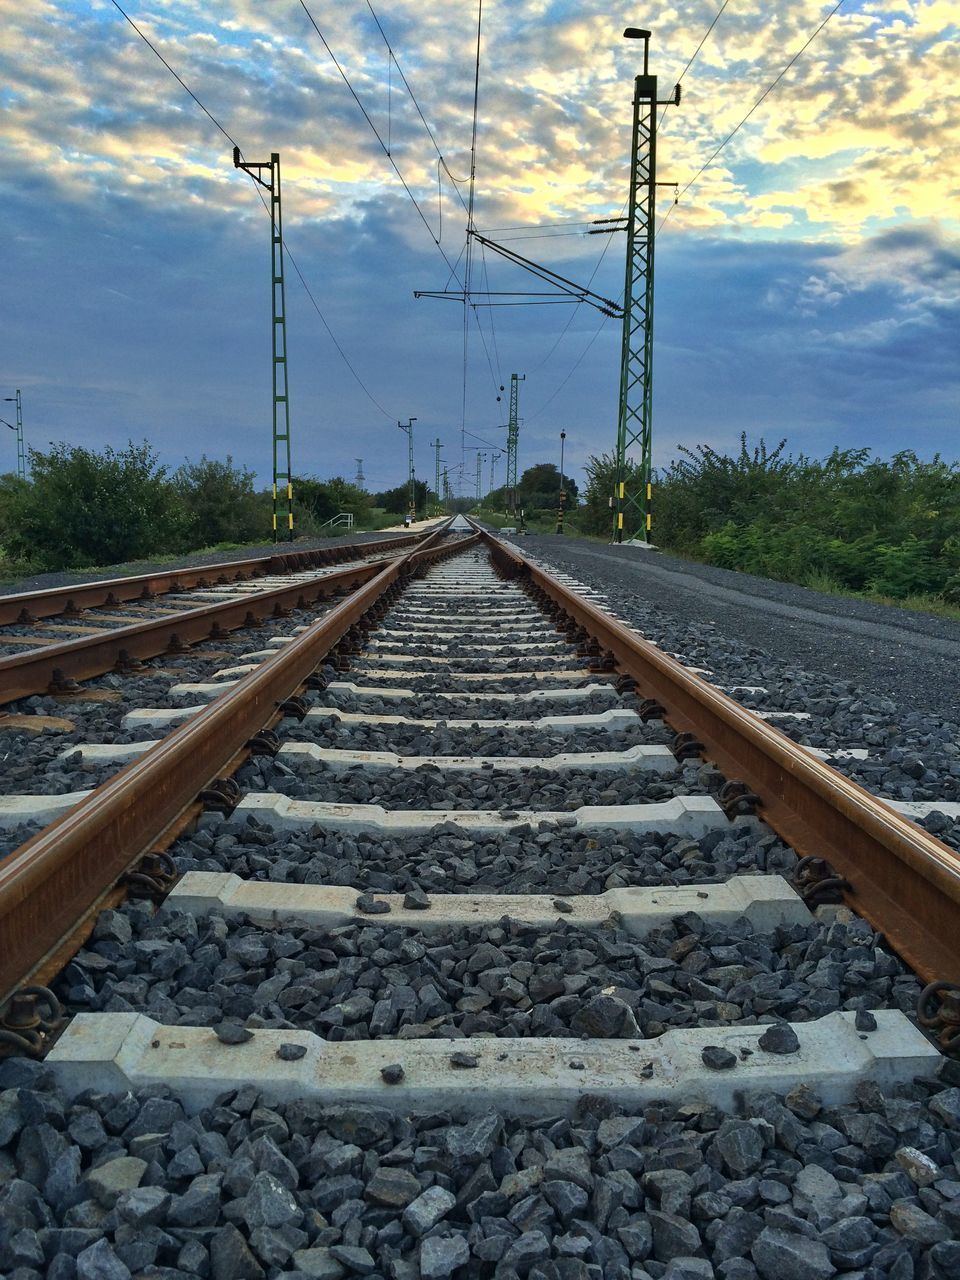 railroad track, rail transportation, transportation, cable, gravel, railroad tie, sky, diminishing perspective, cloud - sky, electricity, metal, electricity pylon, no people, rock - object, parallel, power supply, connection, power line, day, the way forward, railway track, nature, outdoors